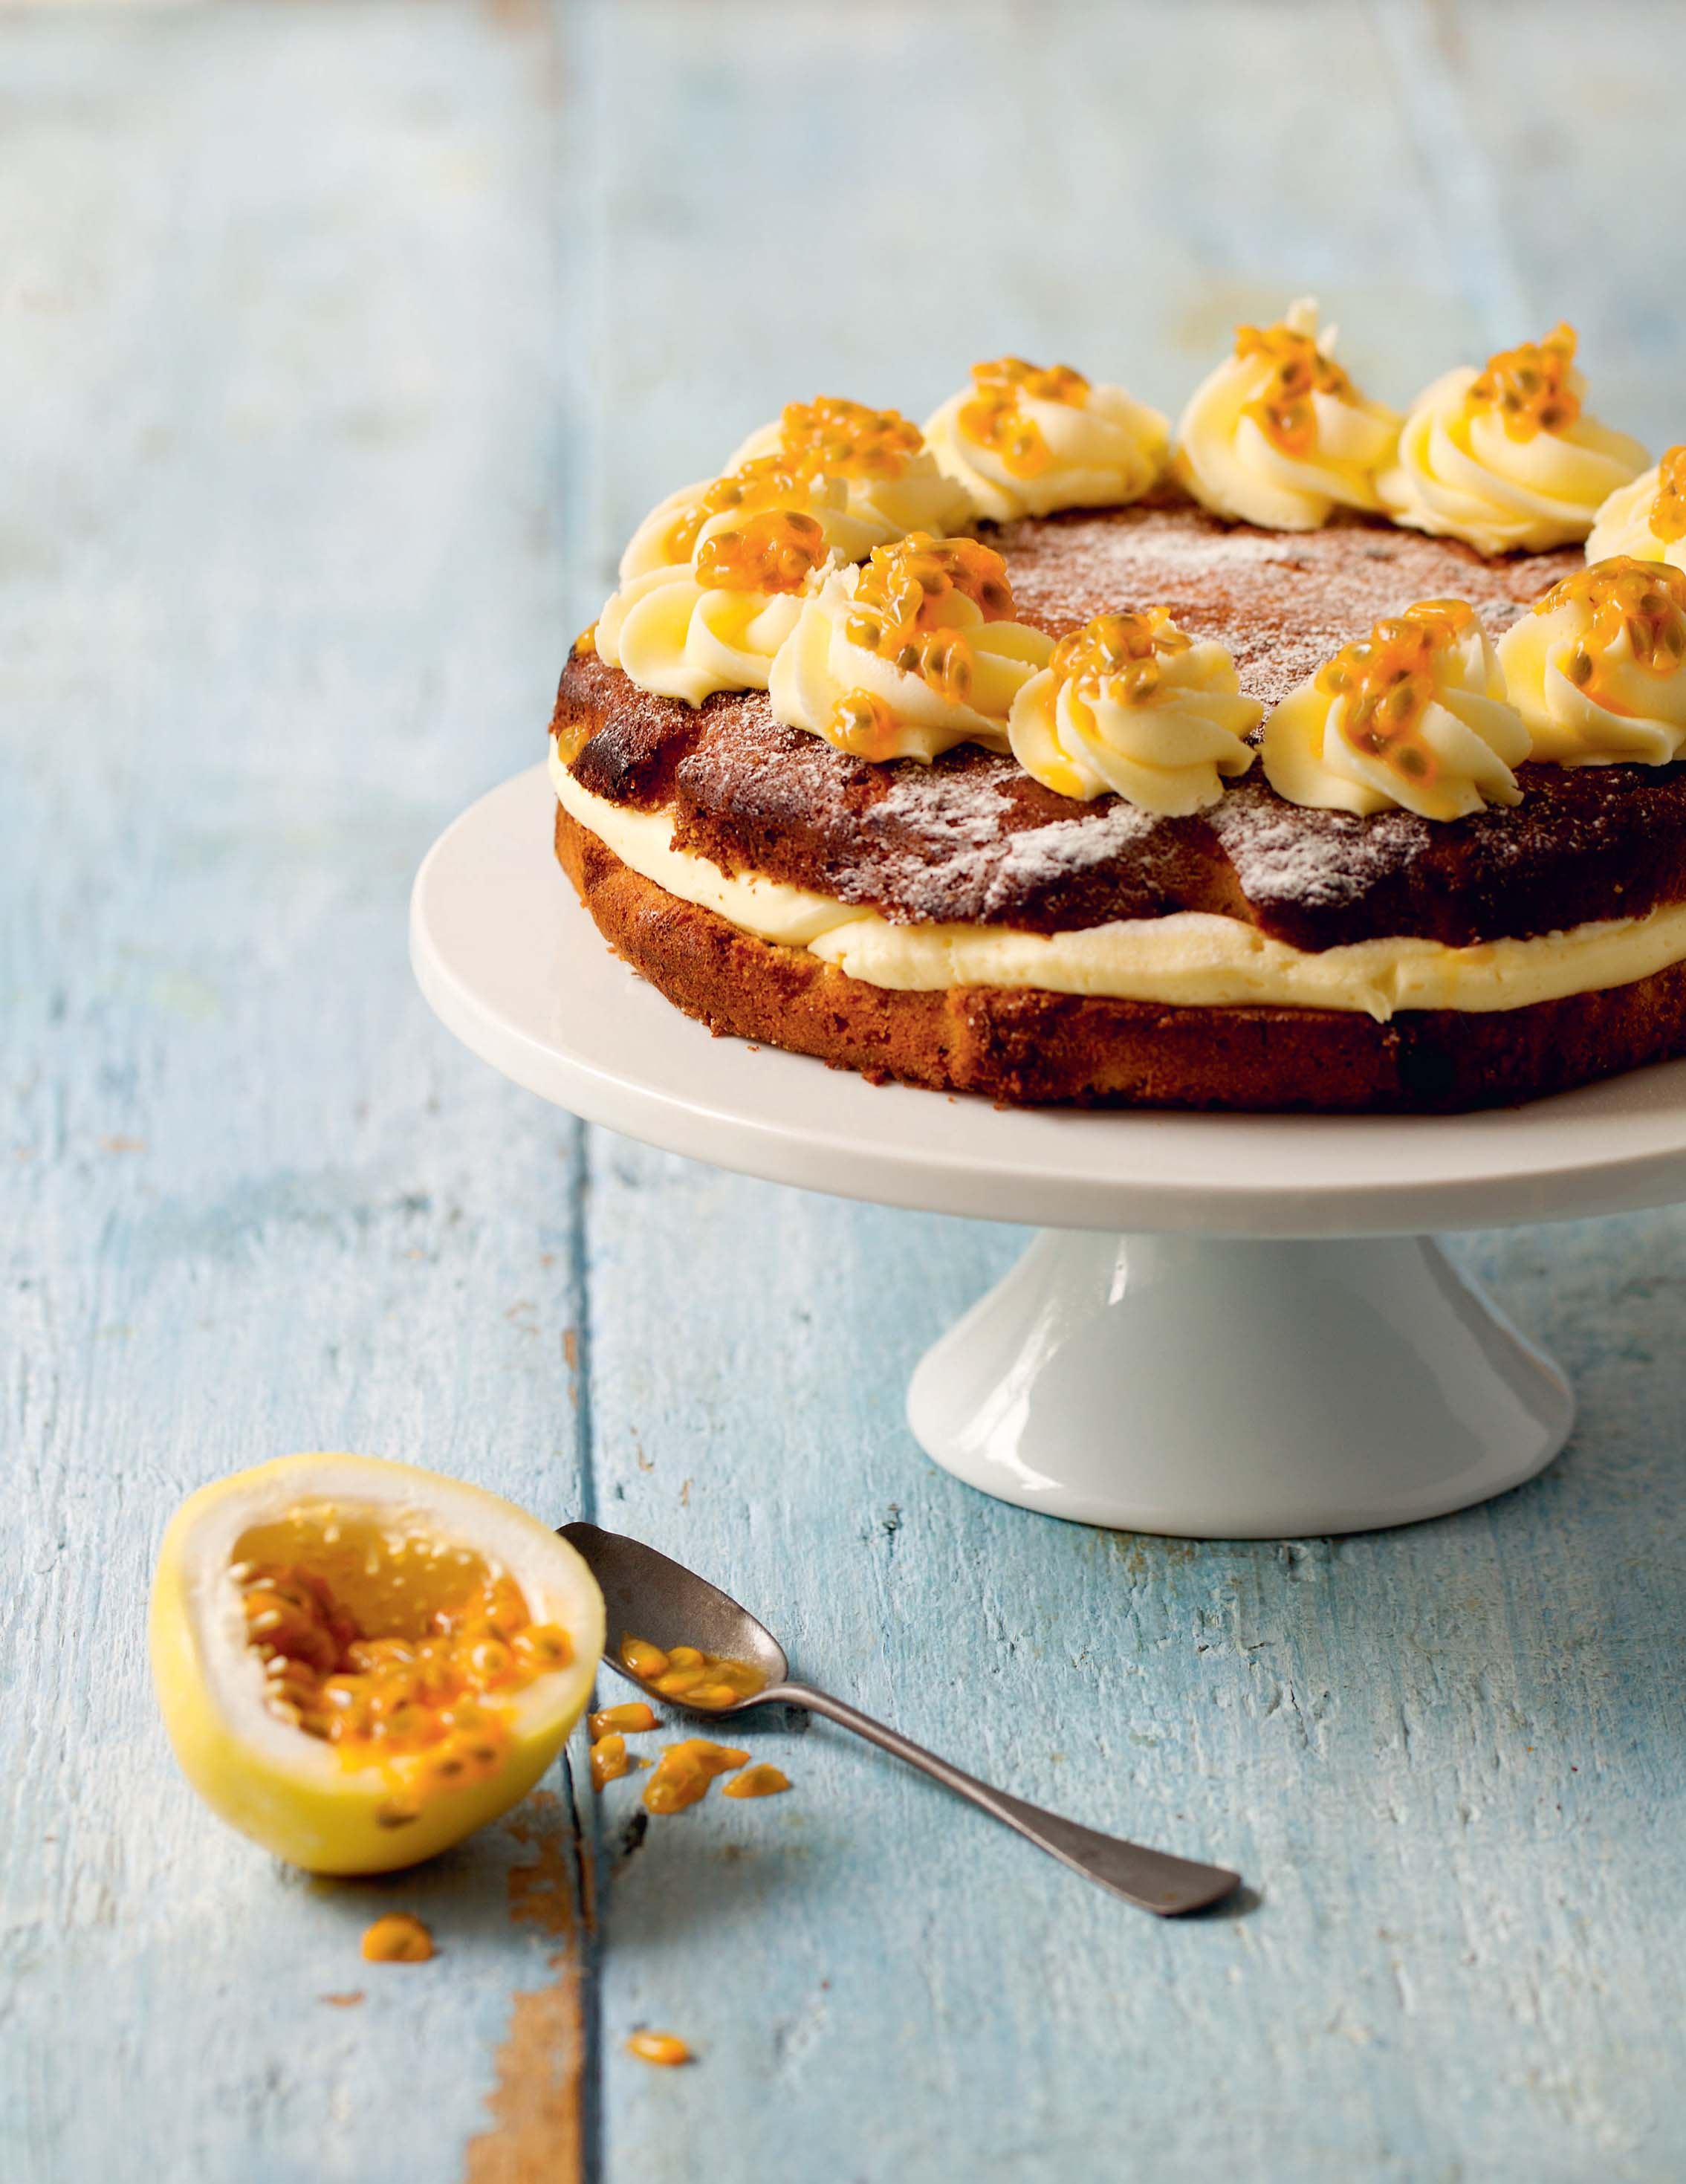 Banana and passion fruit cake